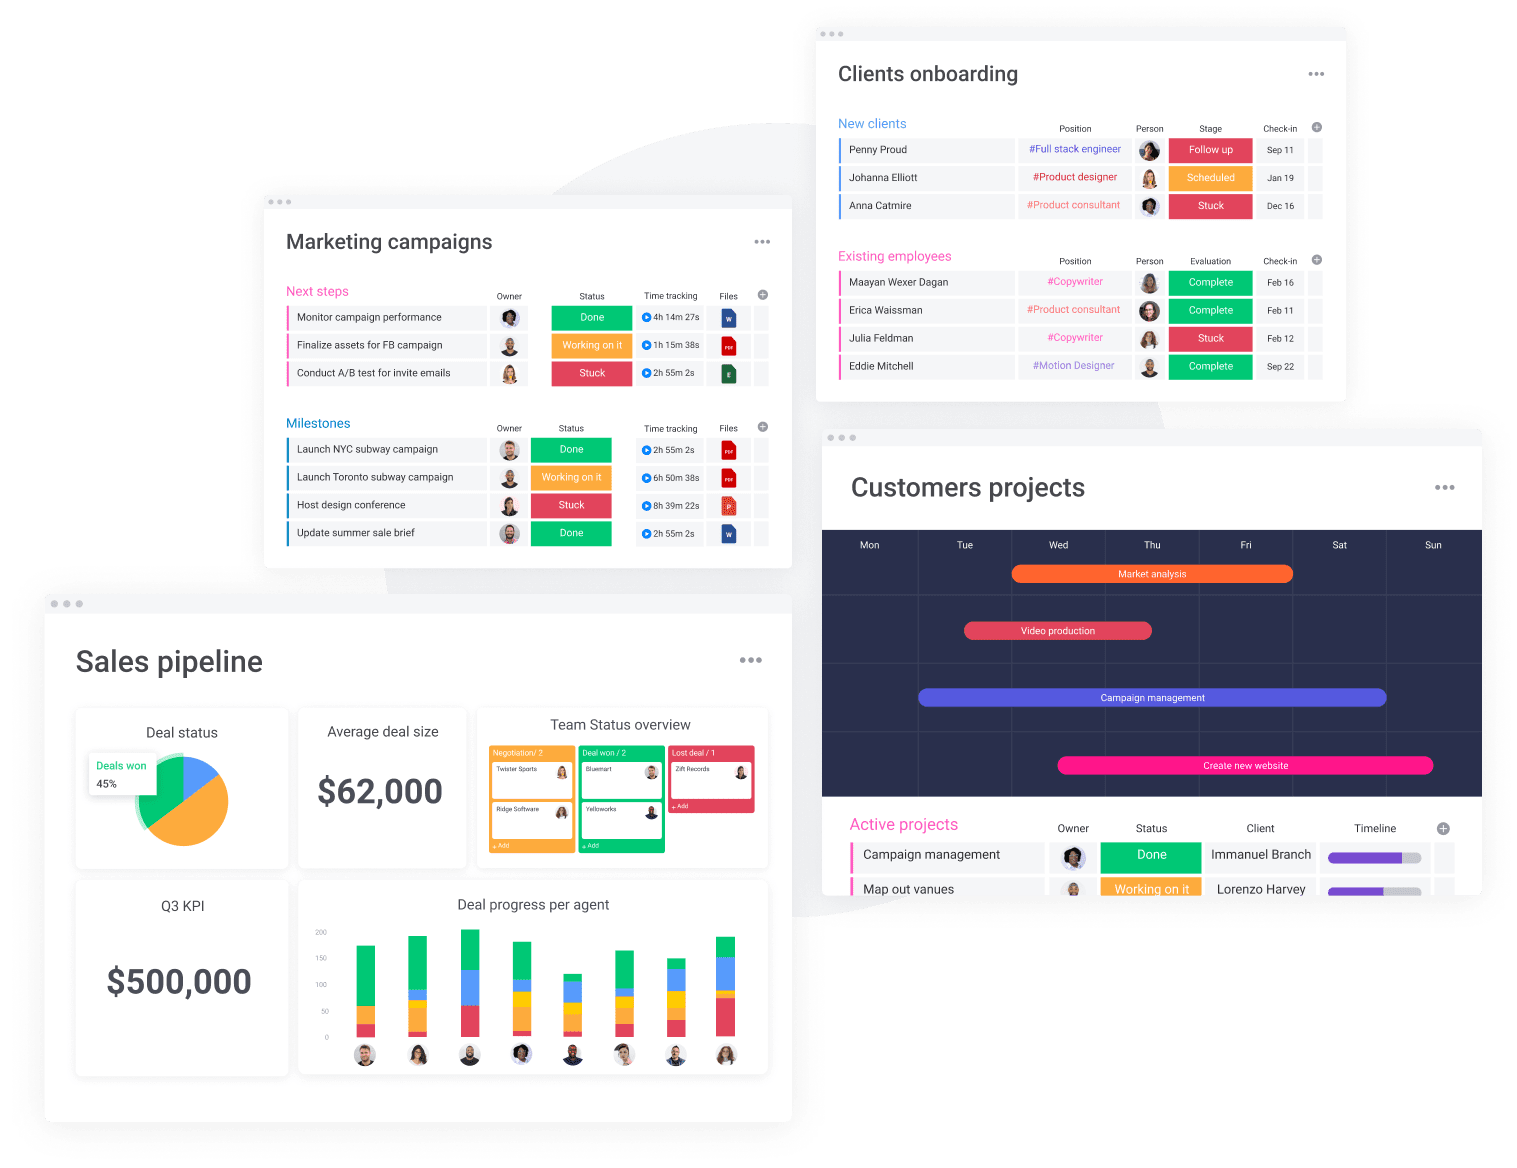 Various CRM dashboards on monday.com